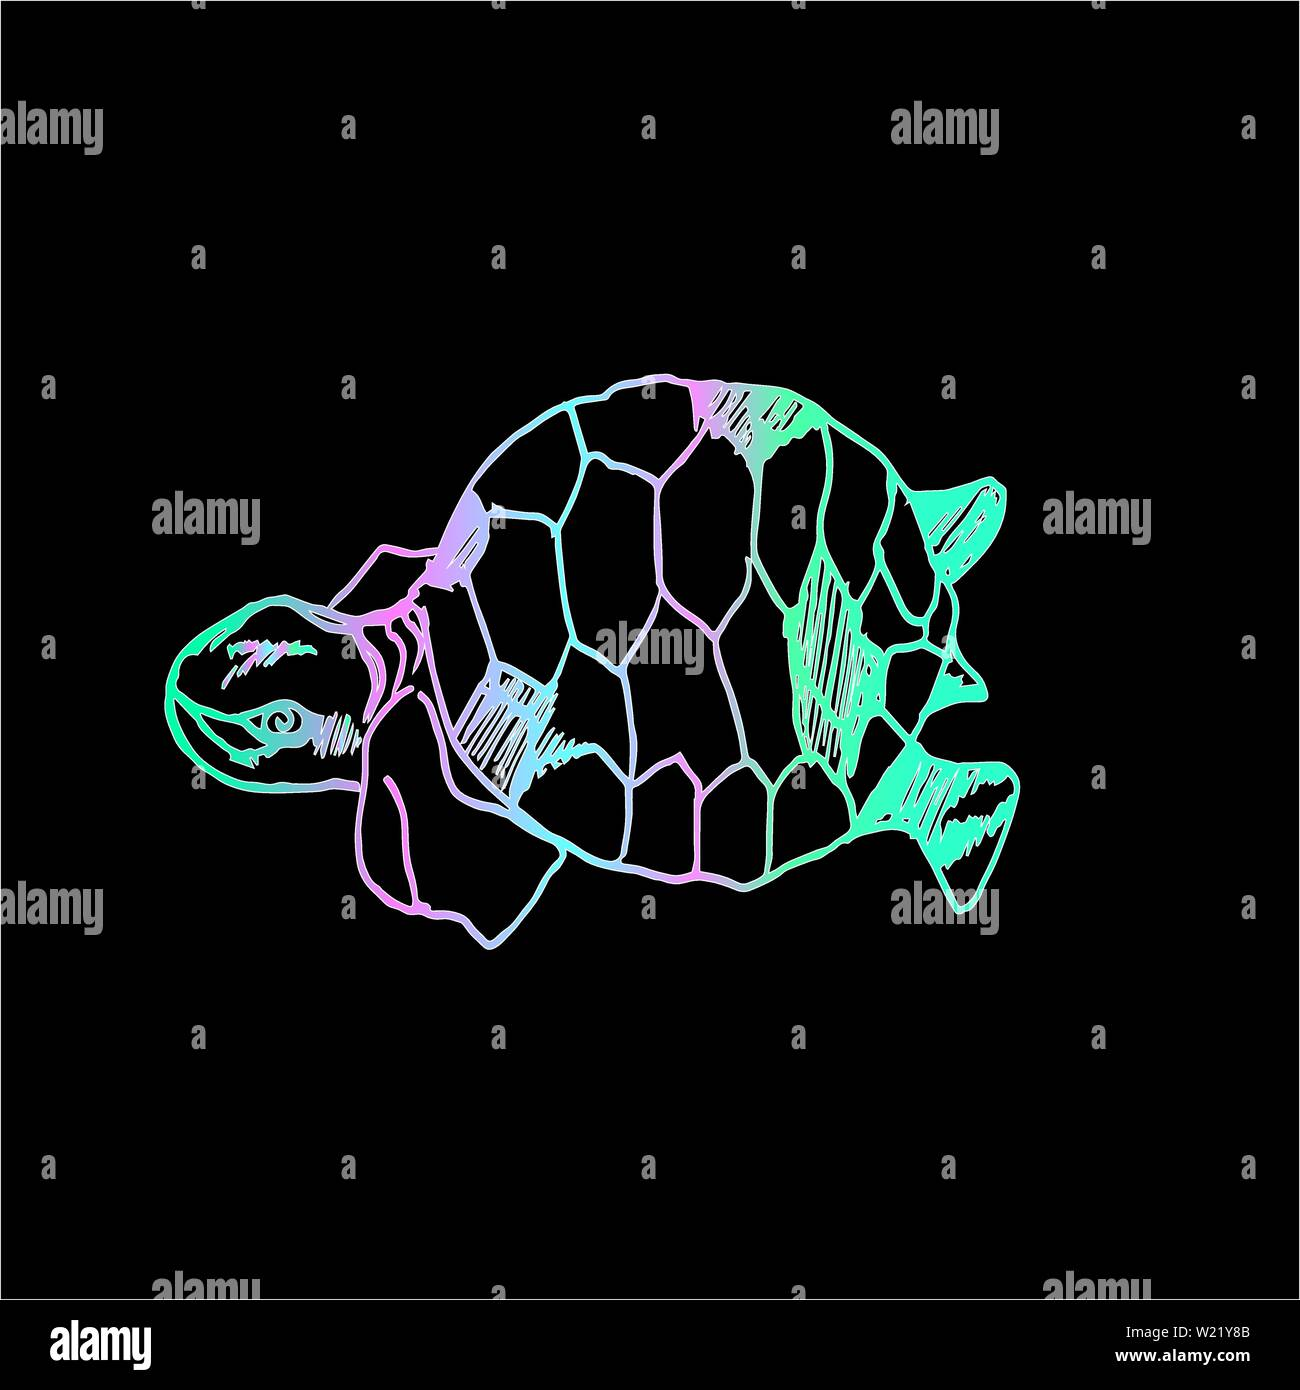 Neon illustration of a psychedelic turtle. - Stock Image